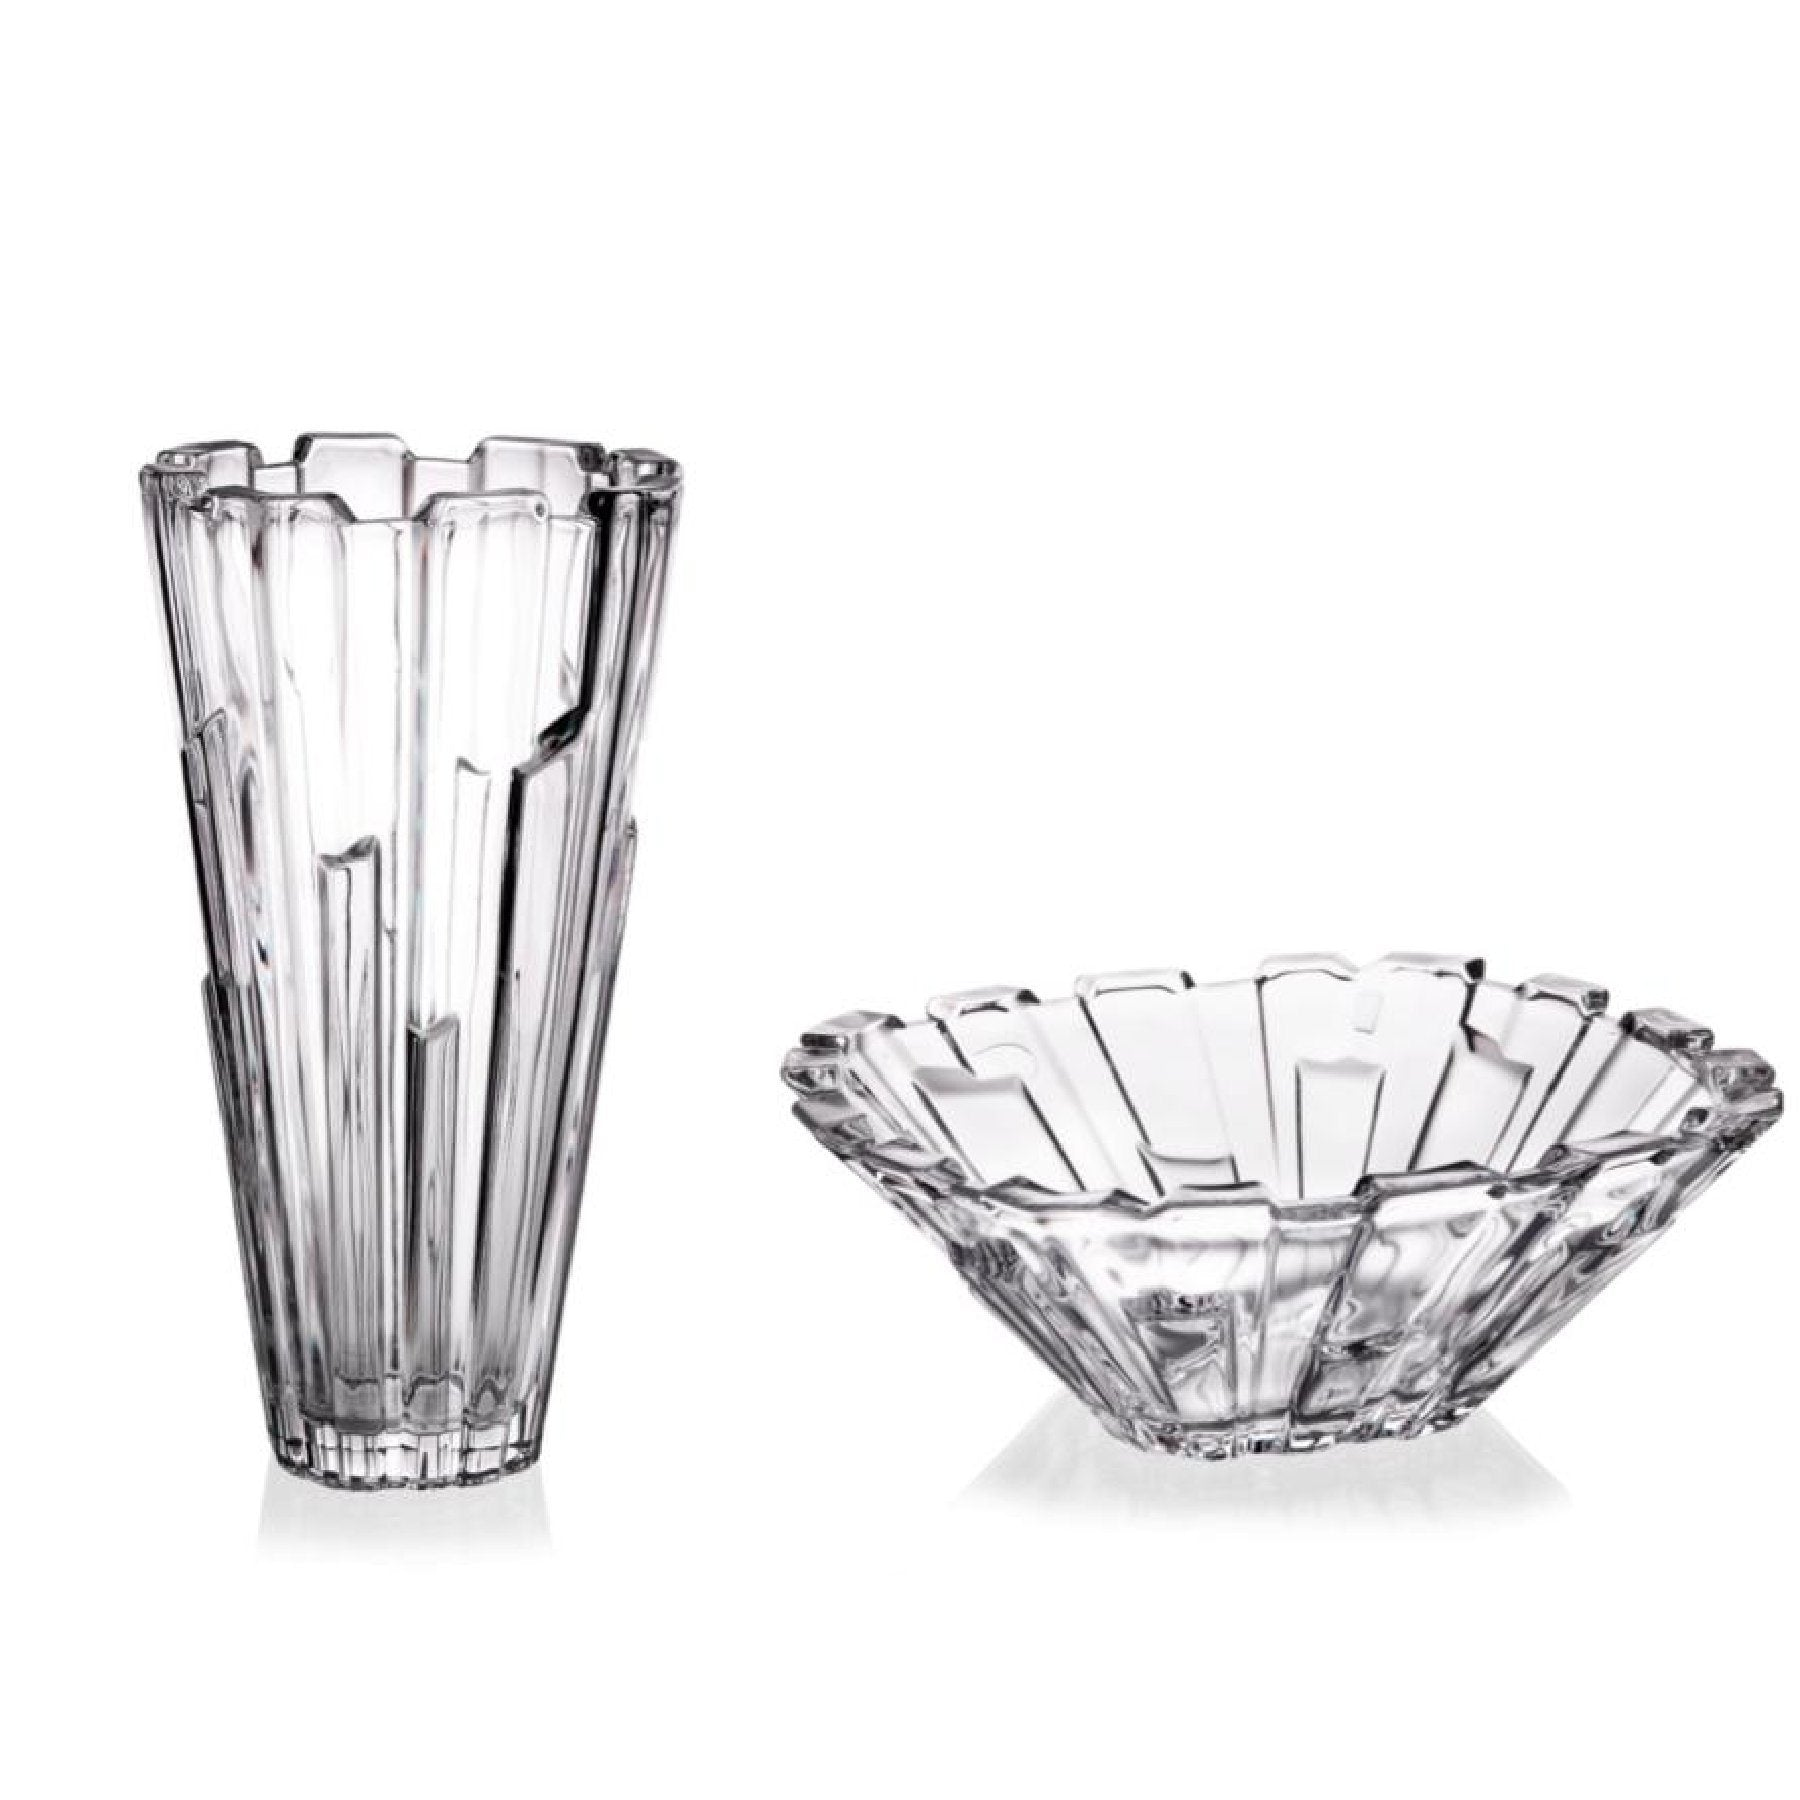 'Piano' Crystal Gift Set of 2 - White